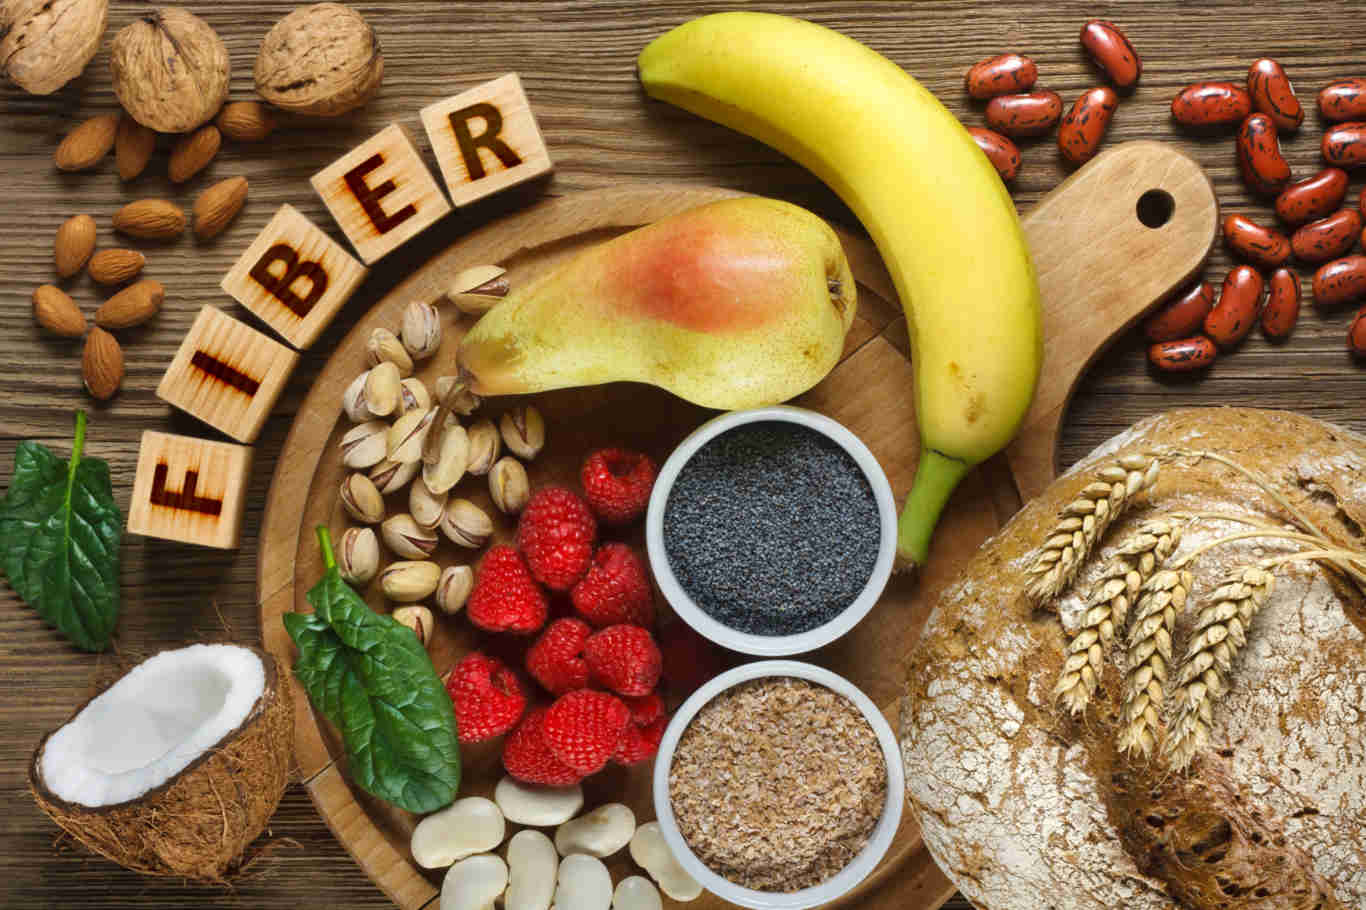 Dietary fiber is important to your health.